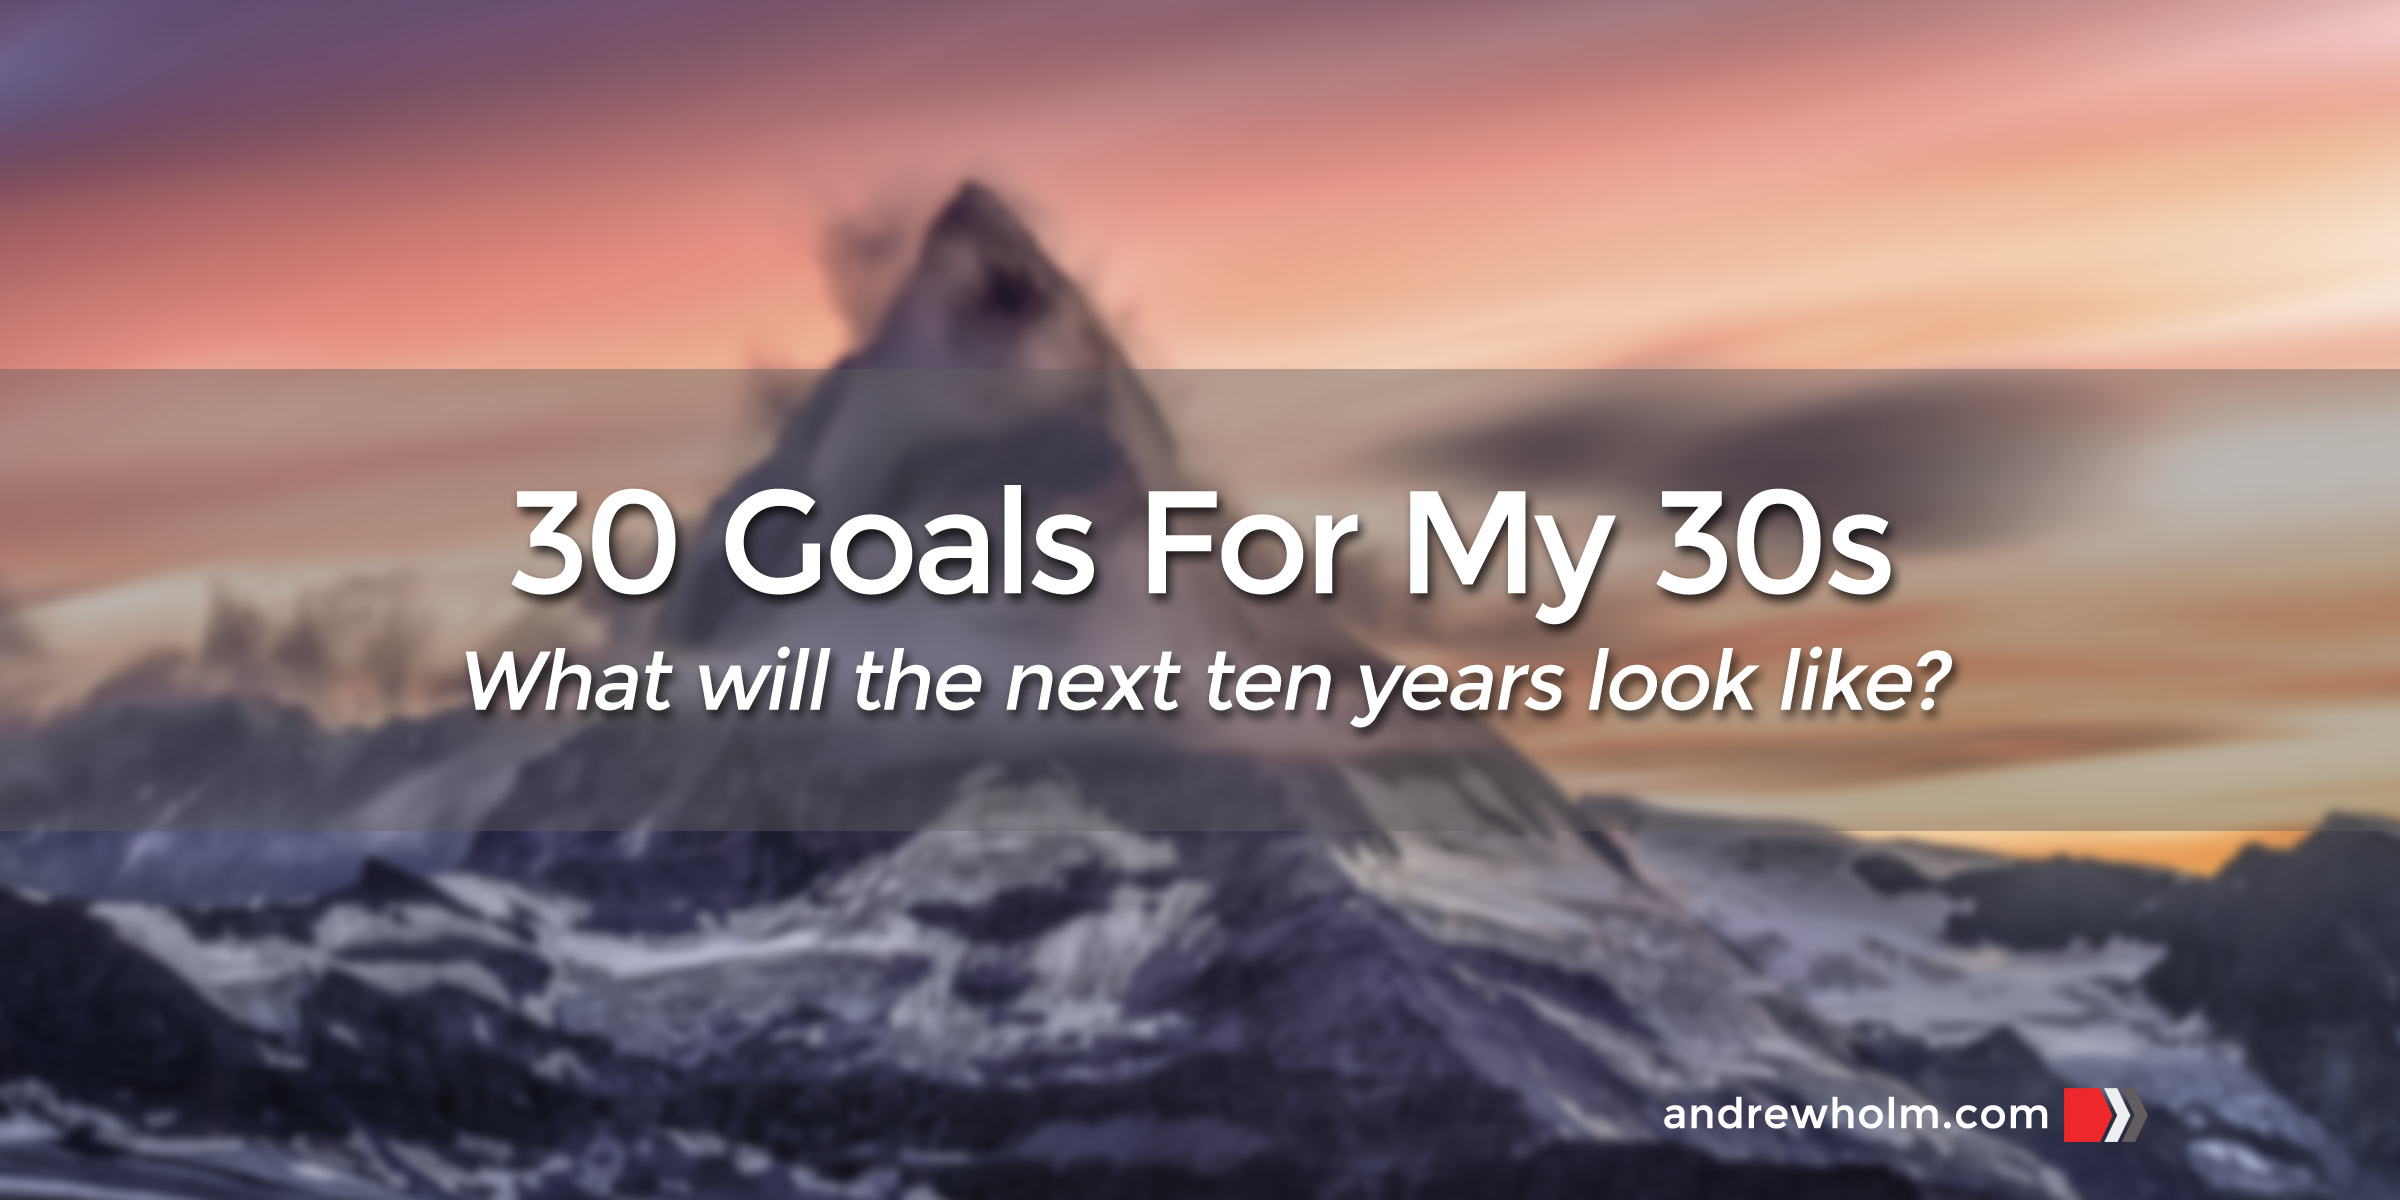 30 Goals for my 30s